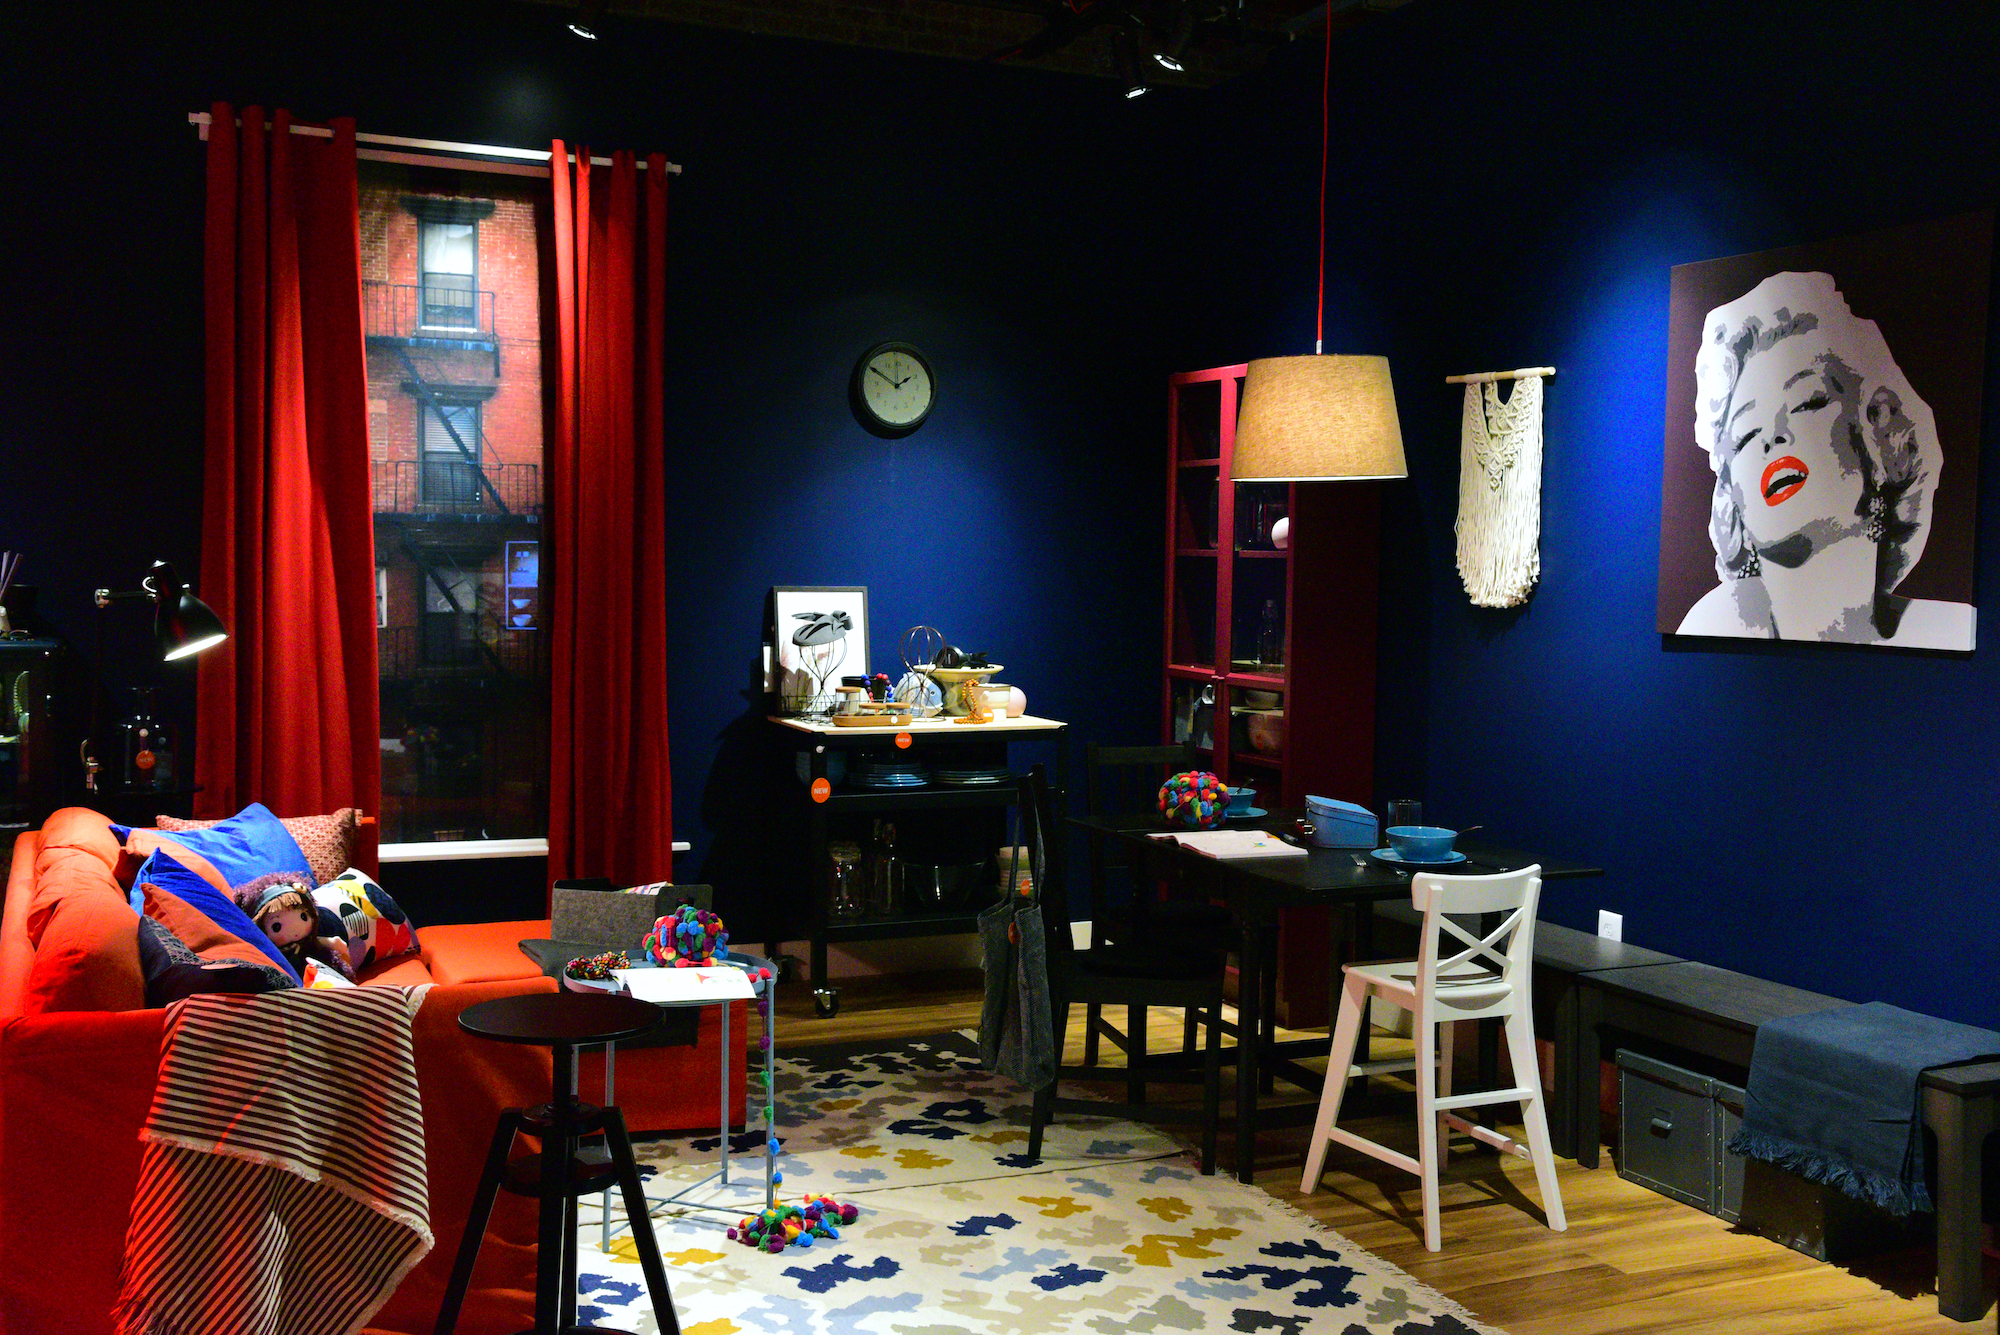 Ikea S 2019 Catalog Comes To Life At This Free Pop Up Event In Soho 6sqft